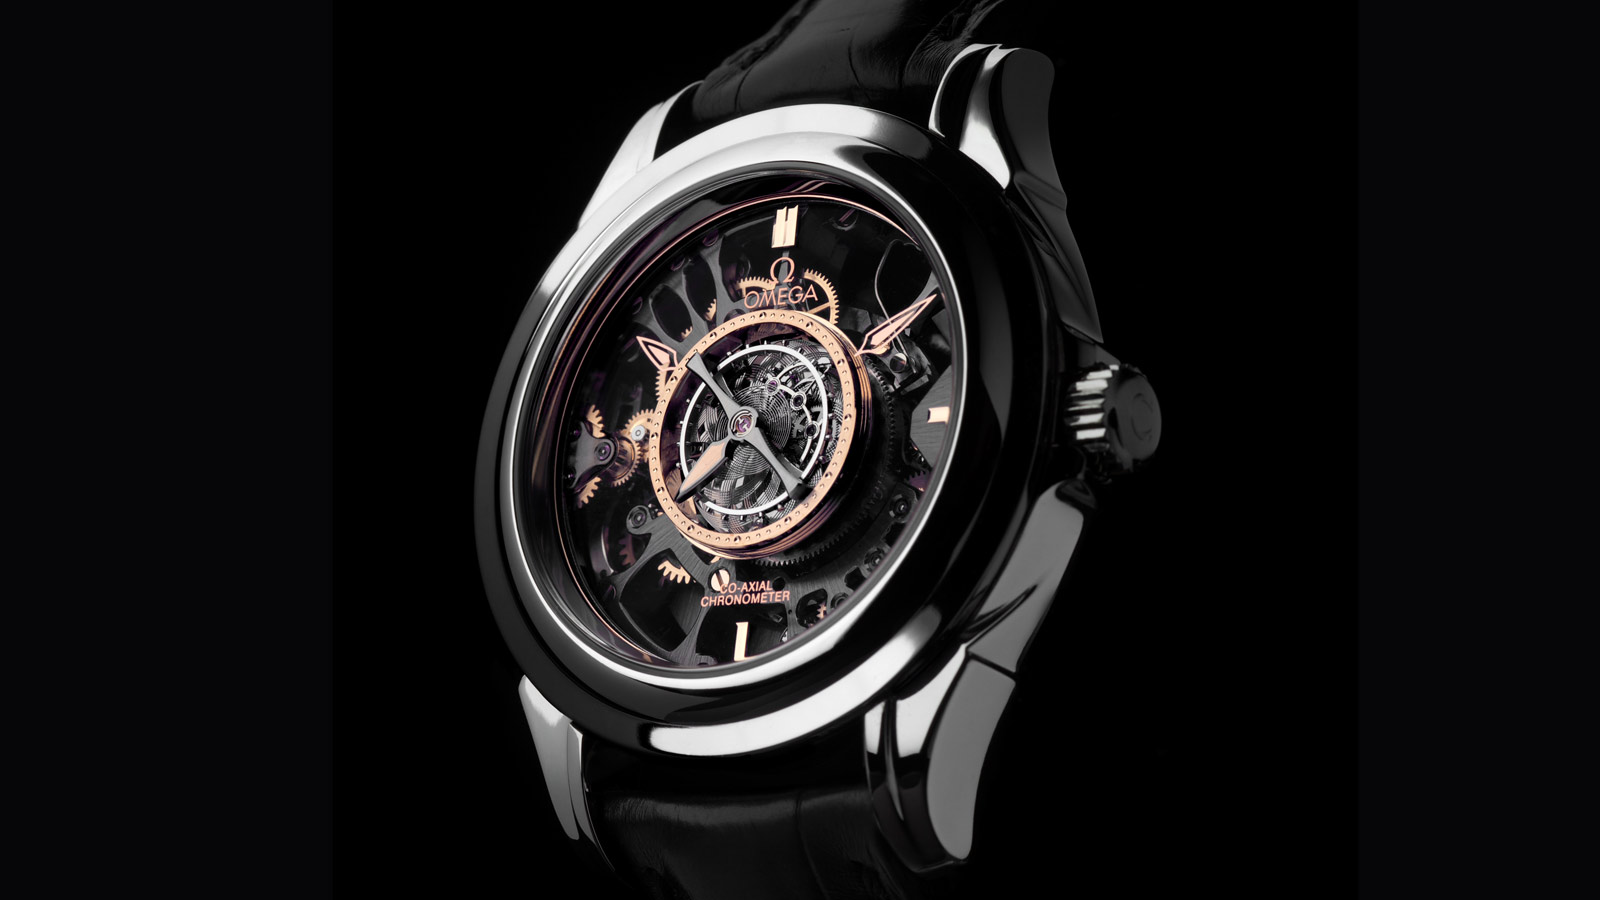 De Ville TOURBILLON Tourbillon Co‑Axial Limitierte Edition 38,7 mm - 513.93.39.21.99.001 - Anzeigen 1